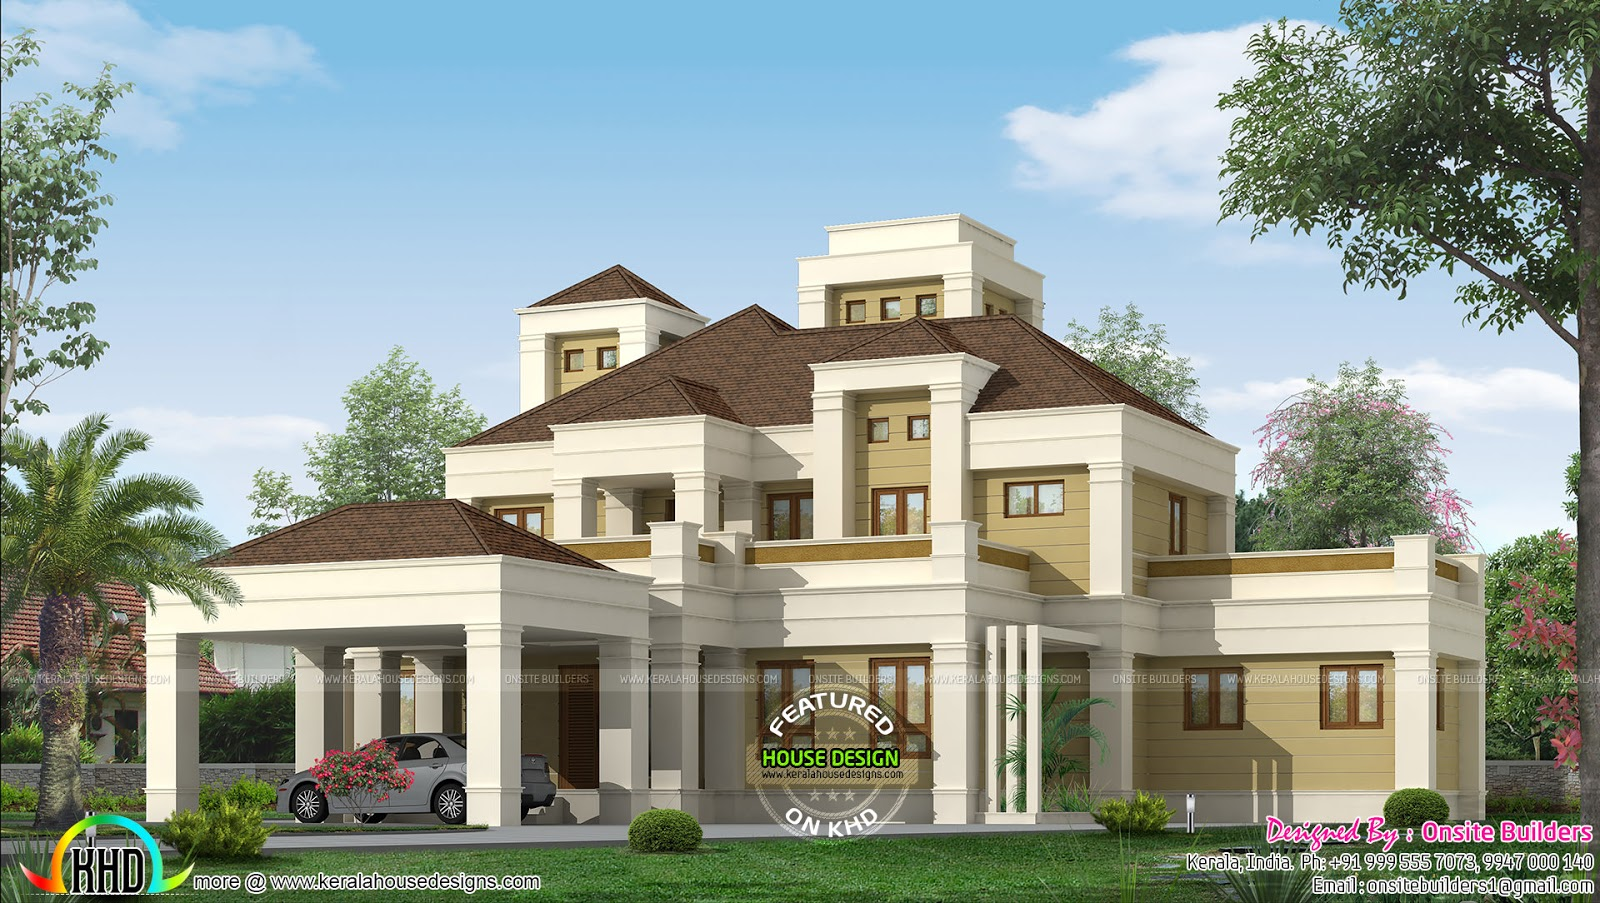 Elegant colonial home plan kerala home design and floor for Elegant house plans photos